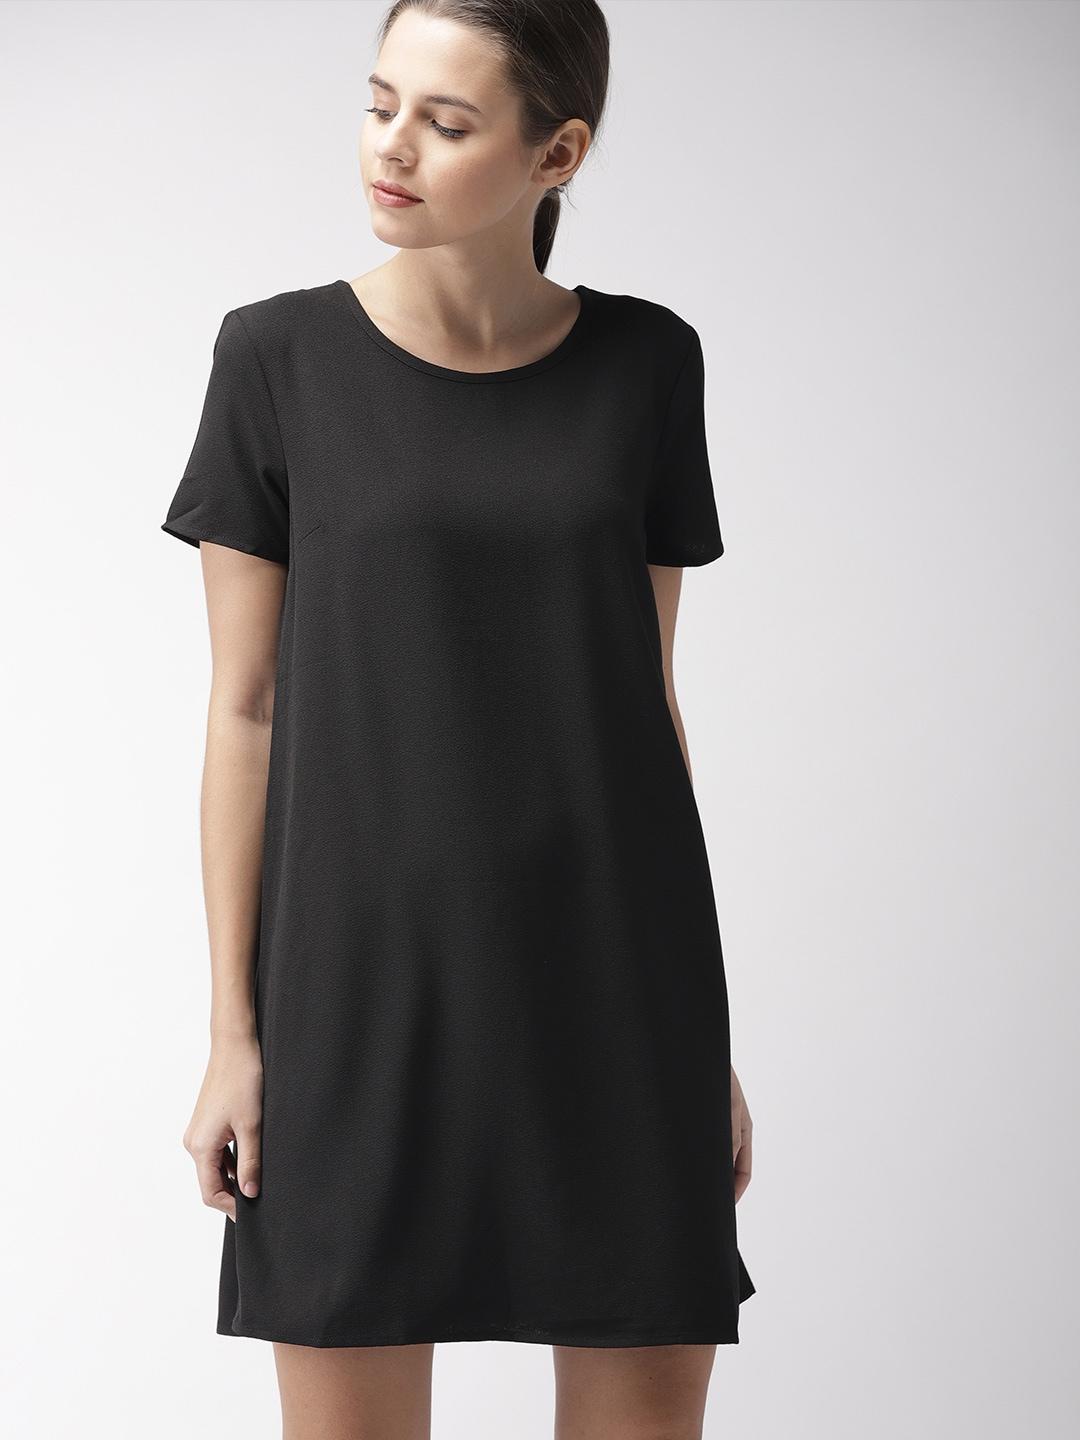 932d2515df Forever 21 - Exclusive Forever 21 Online Store in India at Myntra